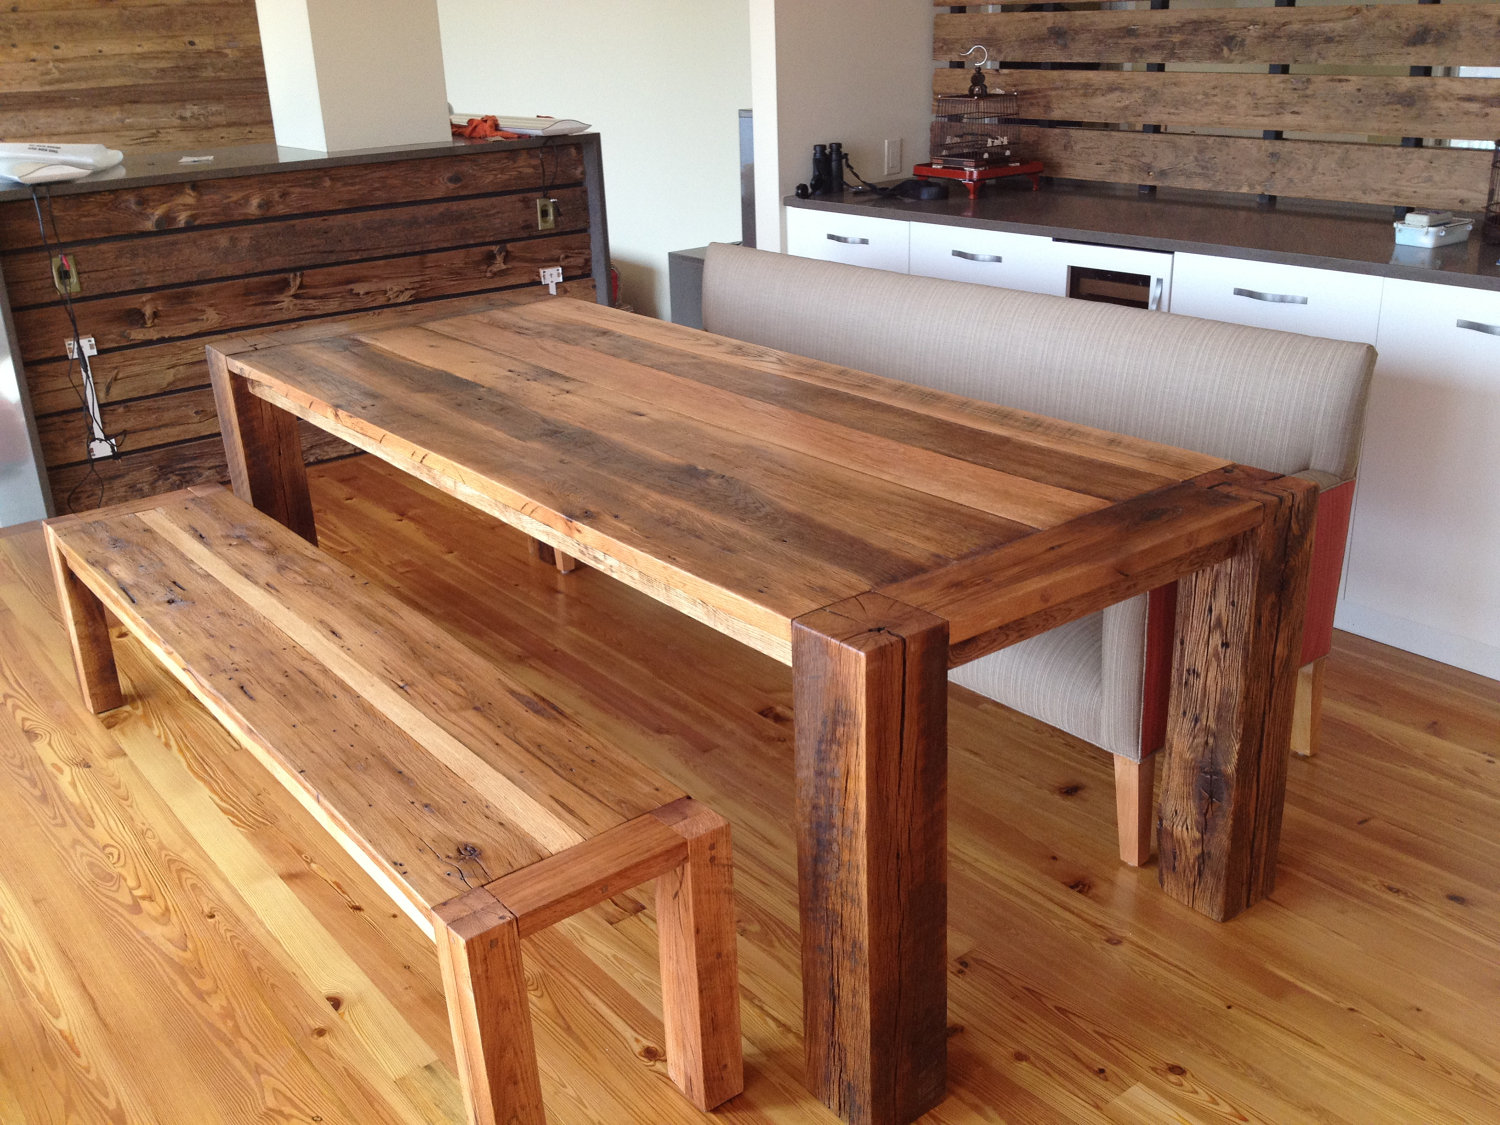 Image of: Distressed Wood Dining Room Table Design